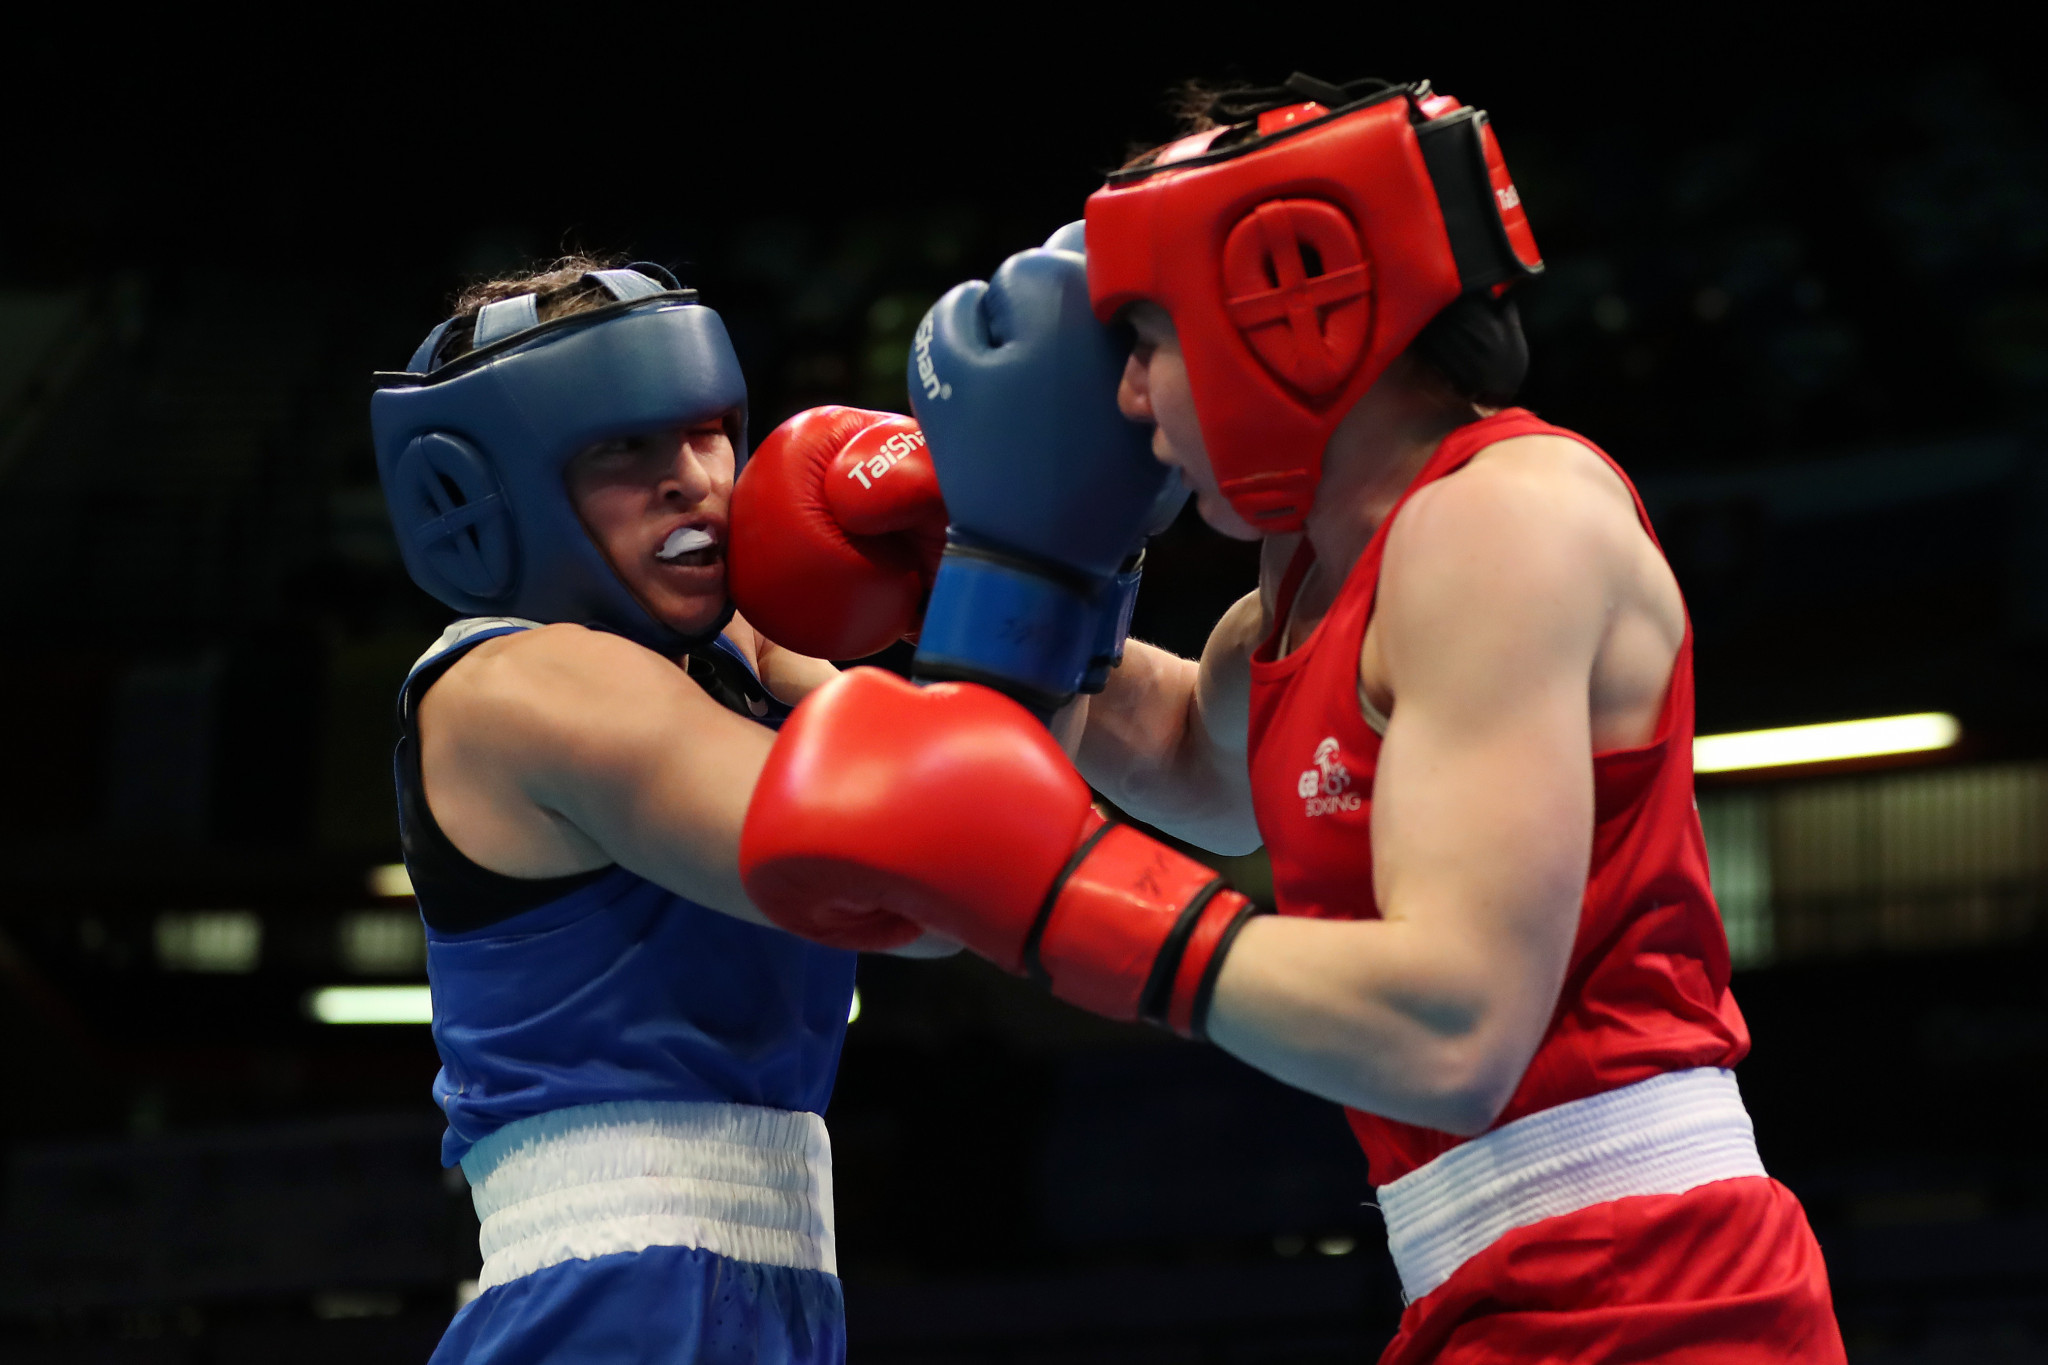 EUBC adopts new constitution with focus on gender equality and athlete representation